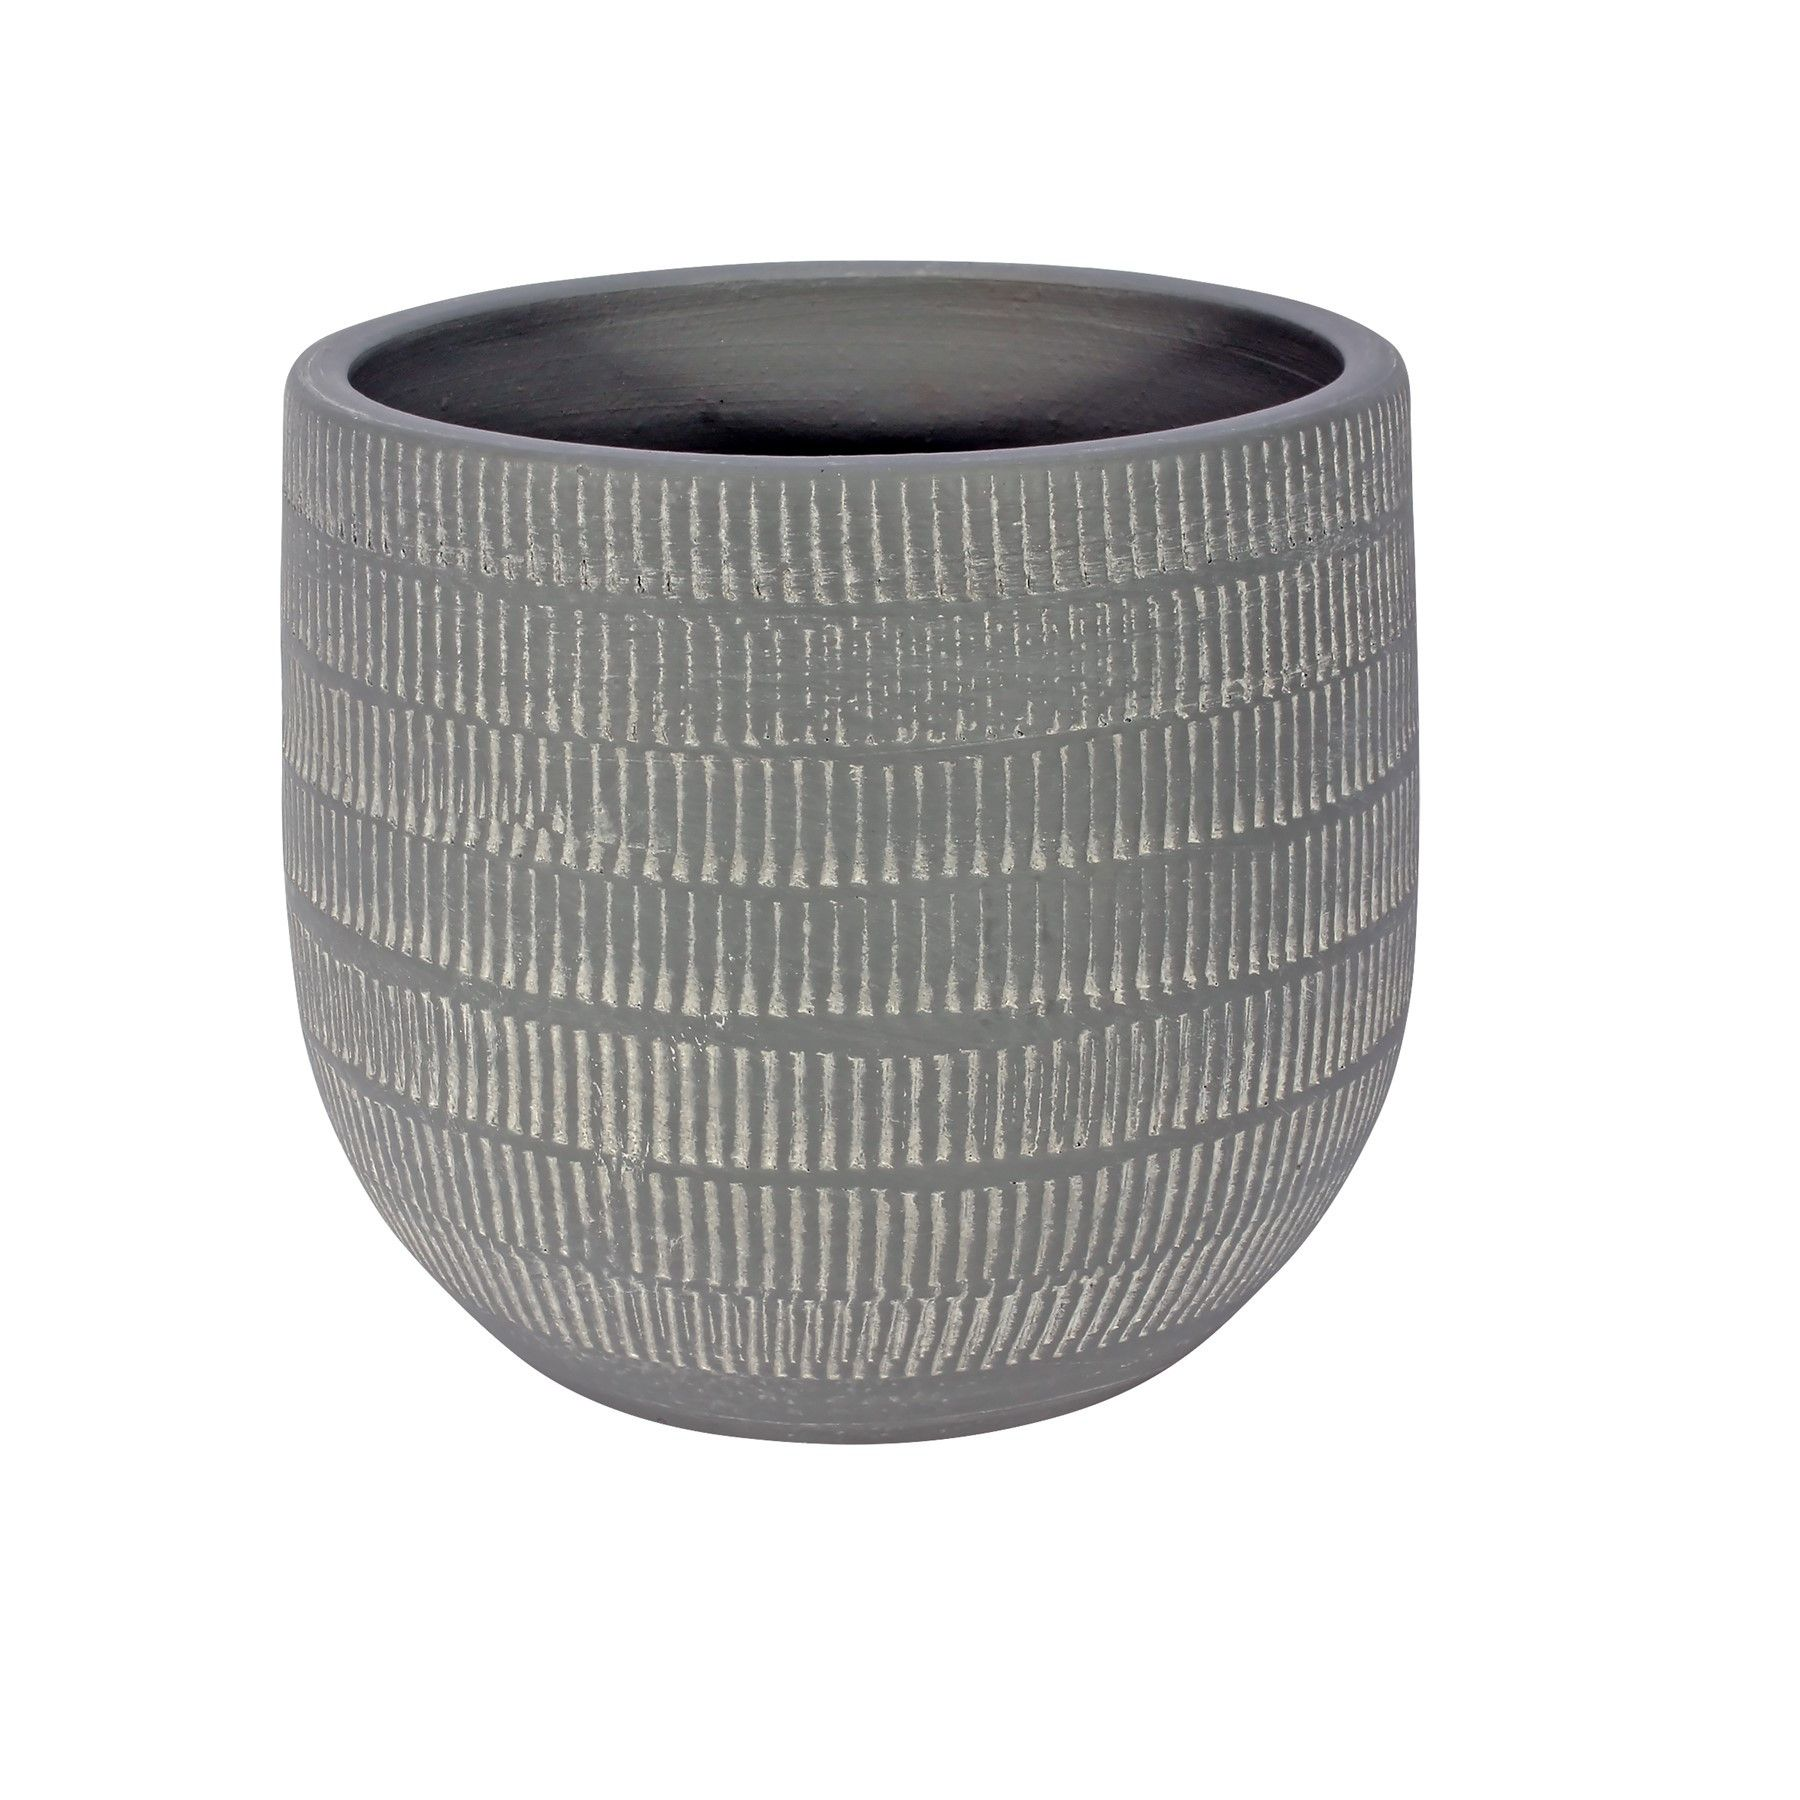 Amalfi Pot Light Grey (16cm x 14cm)